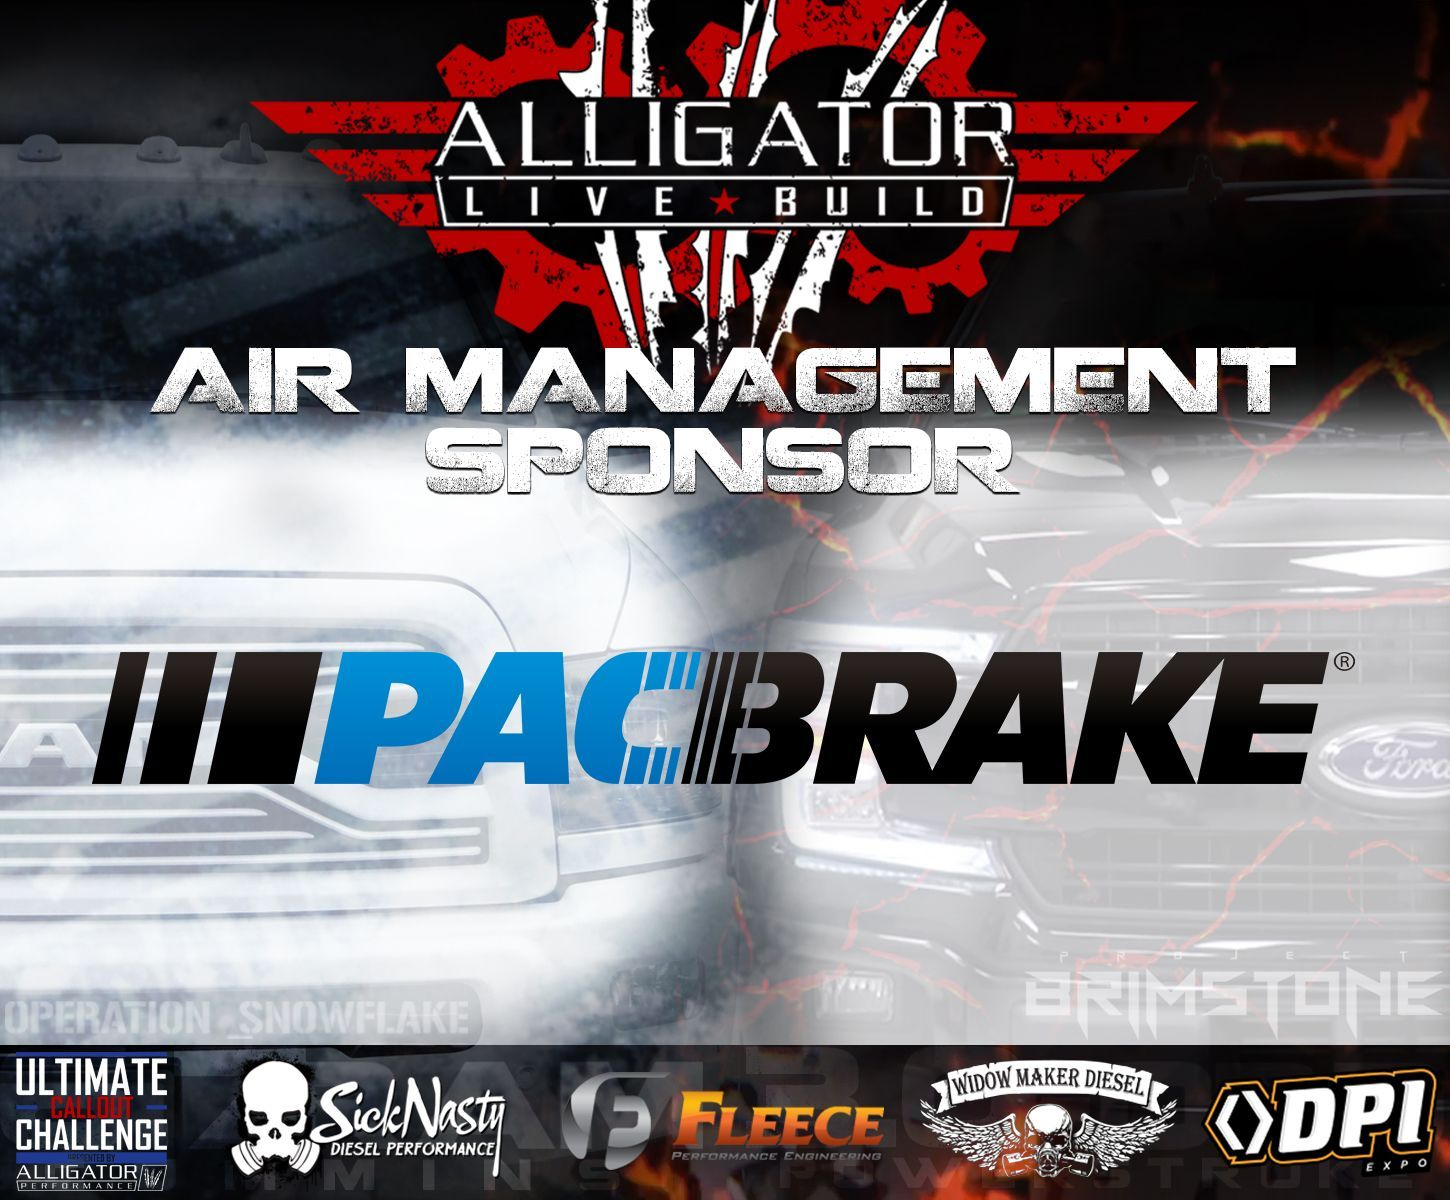 Huge thanks and shout out to PacBrake for being the Air